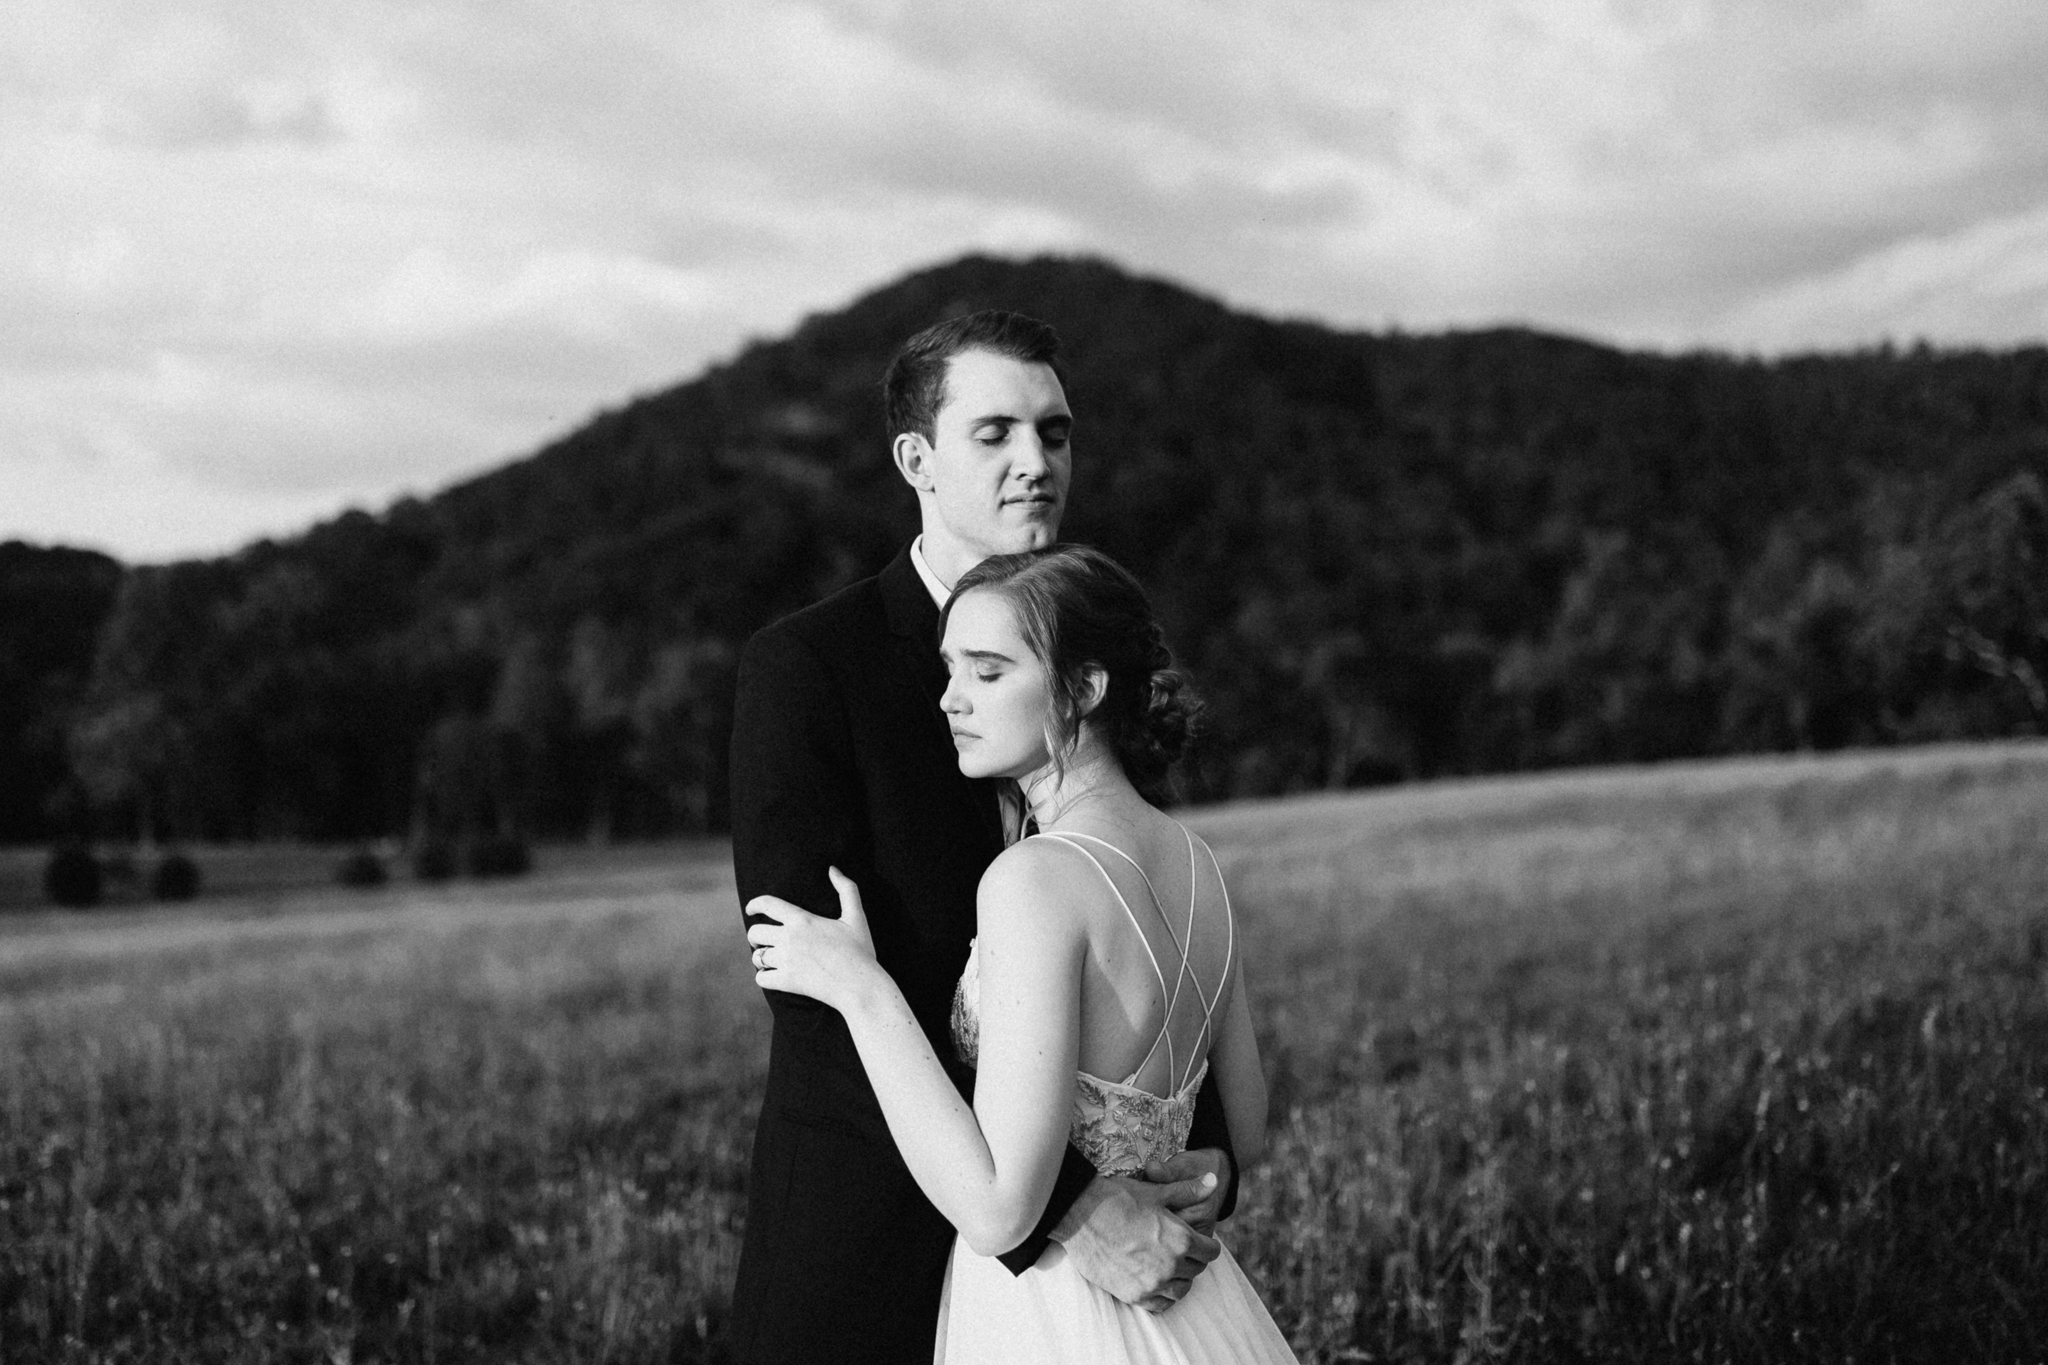 Sarah Moser is the sweetest and her photos are absolutely beautiful! She gives great advice on poses etc. and makes everyone feel so comfortable. My husband and I both love our engagement and wedding photos because we feel like they really capture who we are! Sarah is the best!!   ANNA+GRANT